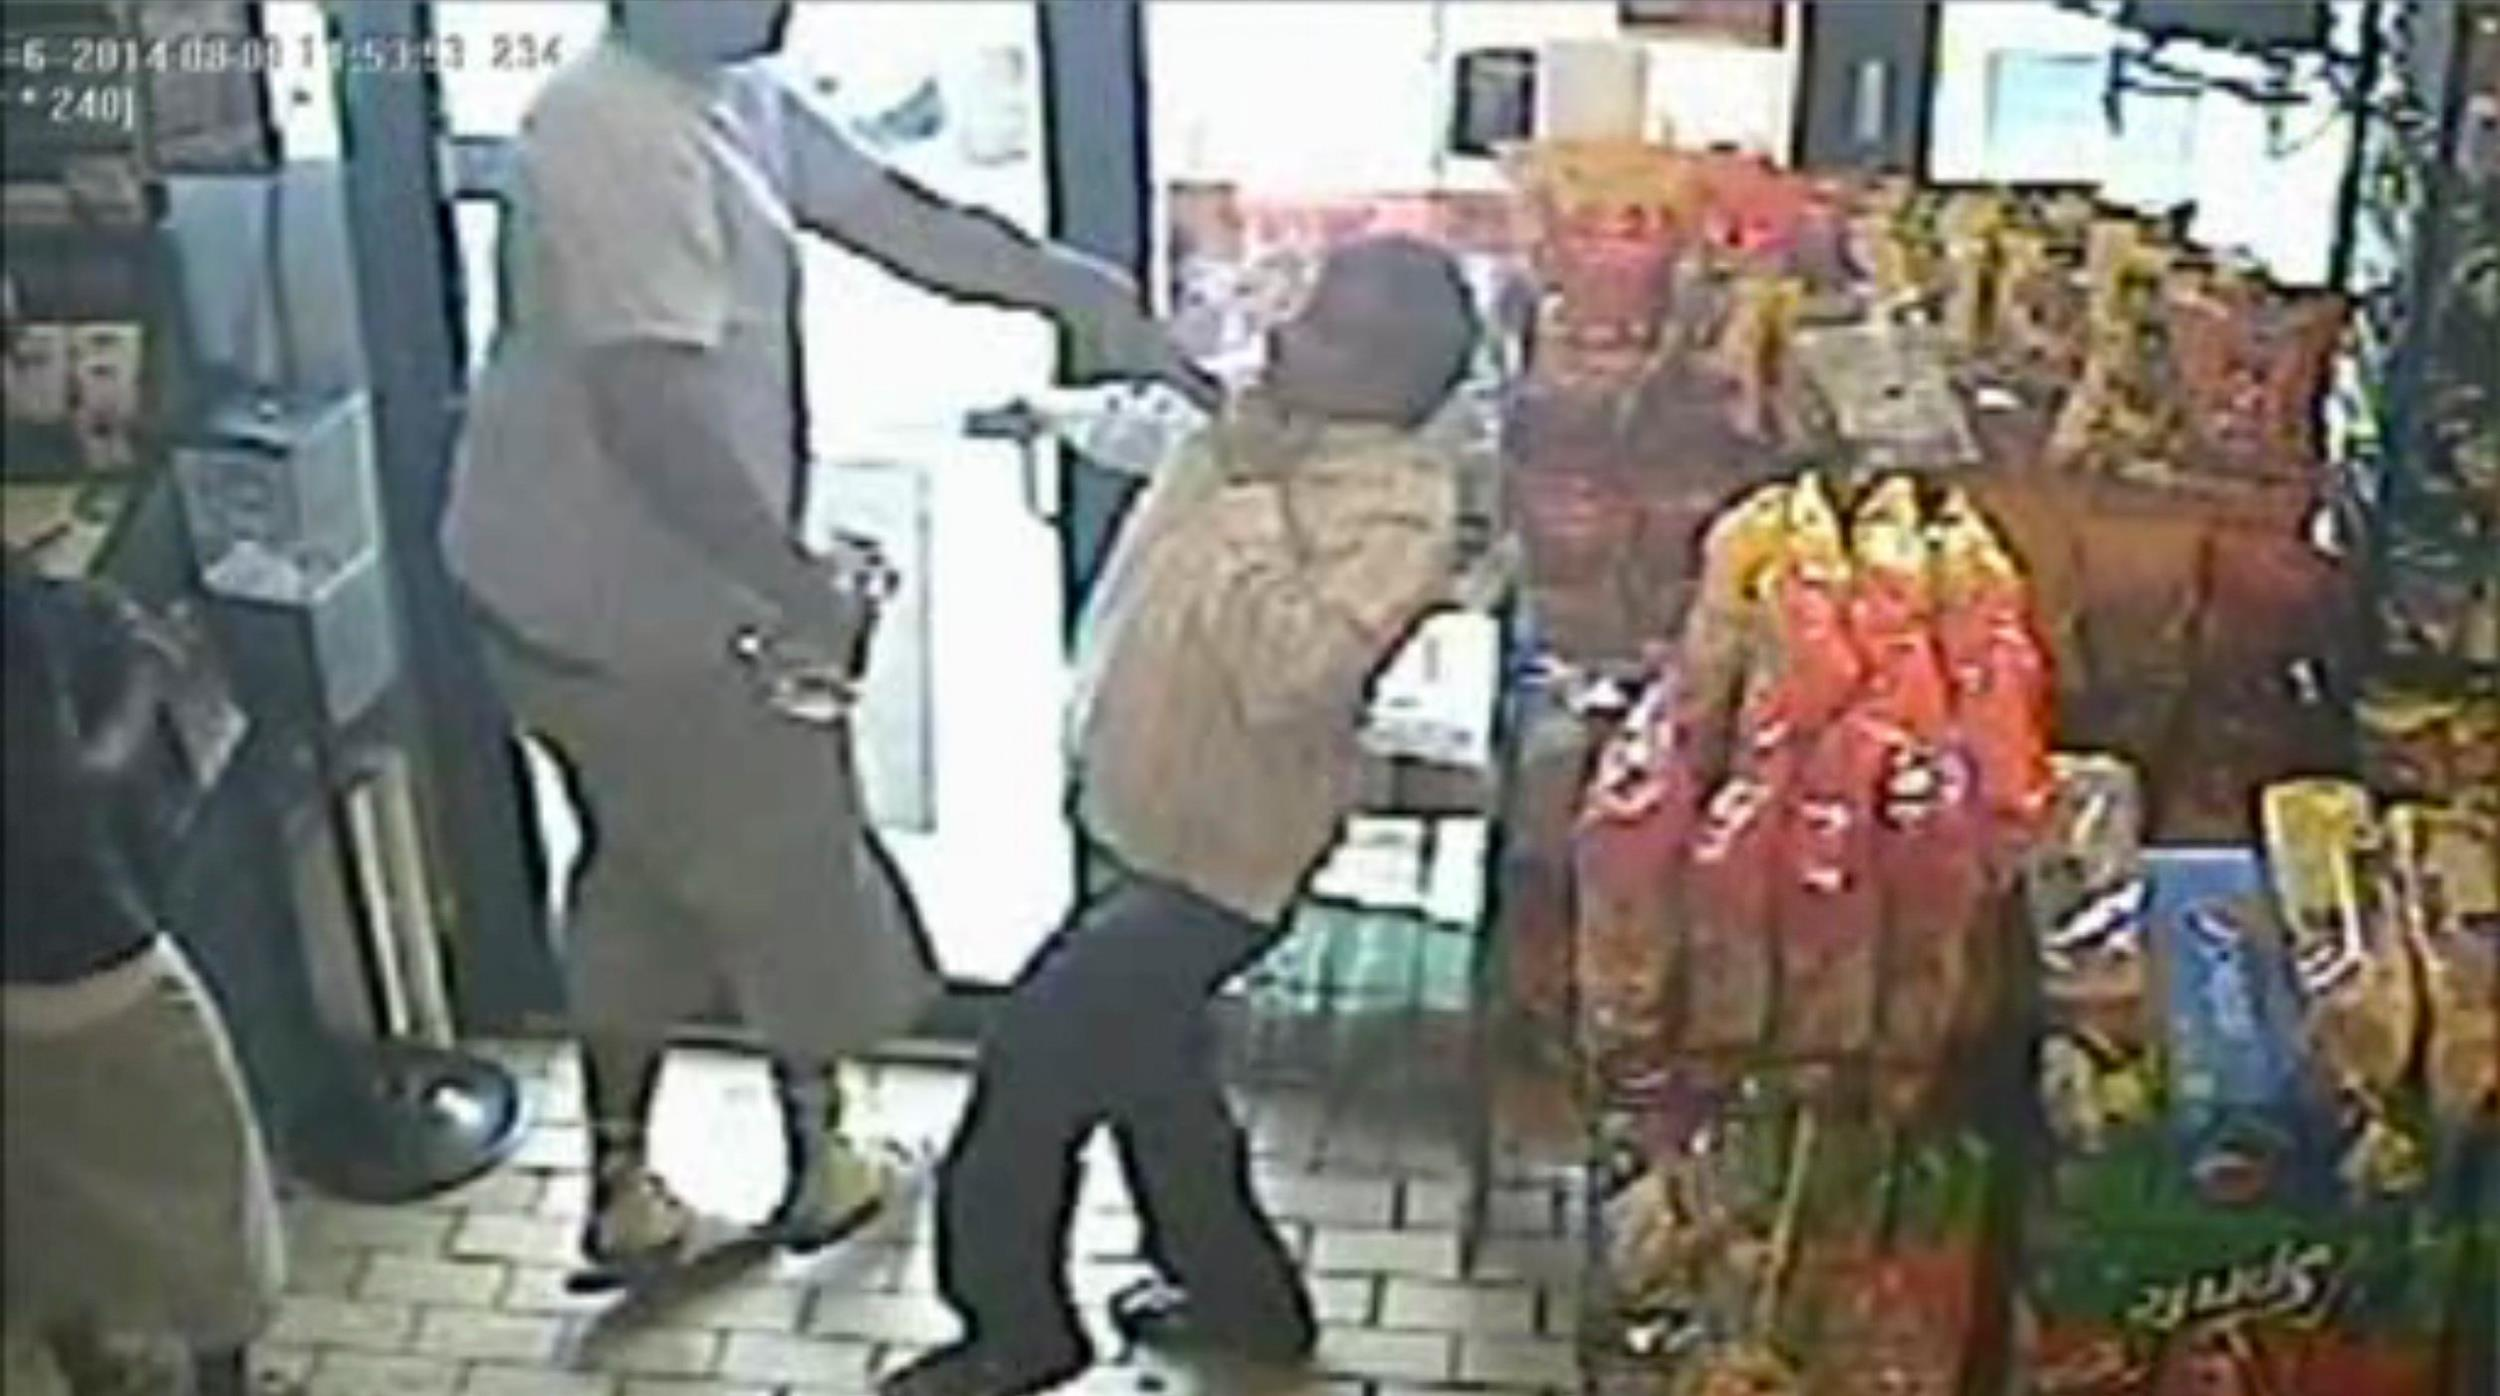 Image: An incident in a store in Ferguson, Missouri August 9, 2014 is seen in this still image taken from a security camera